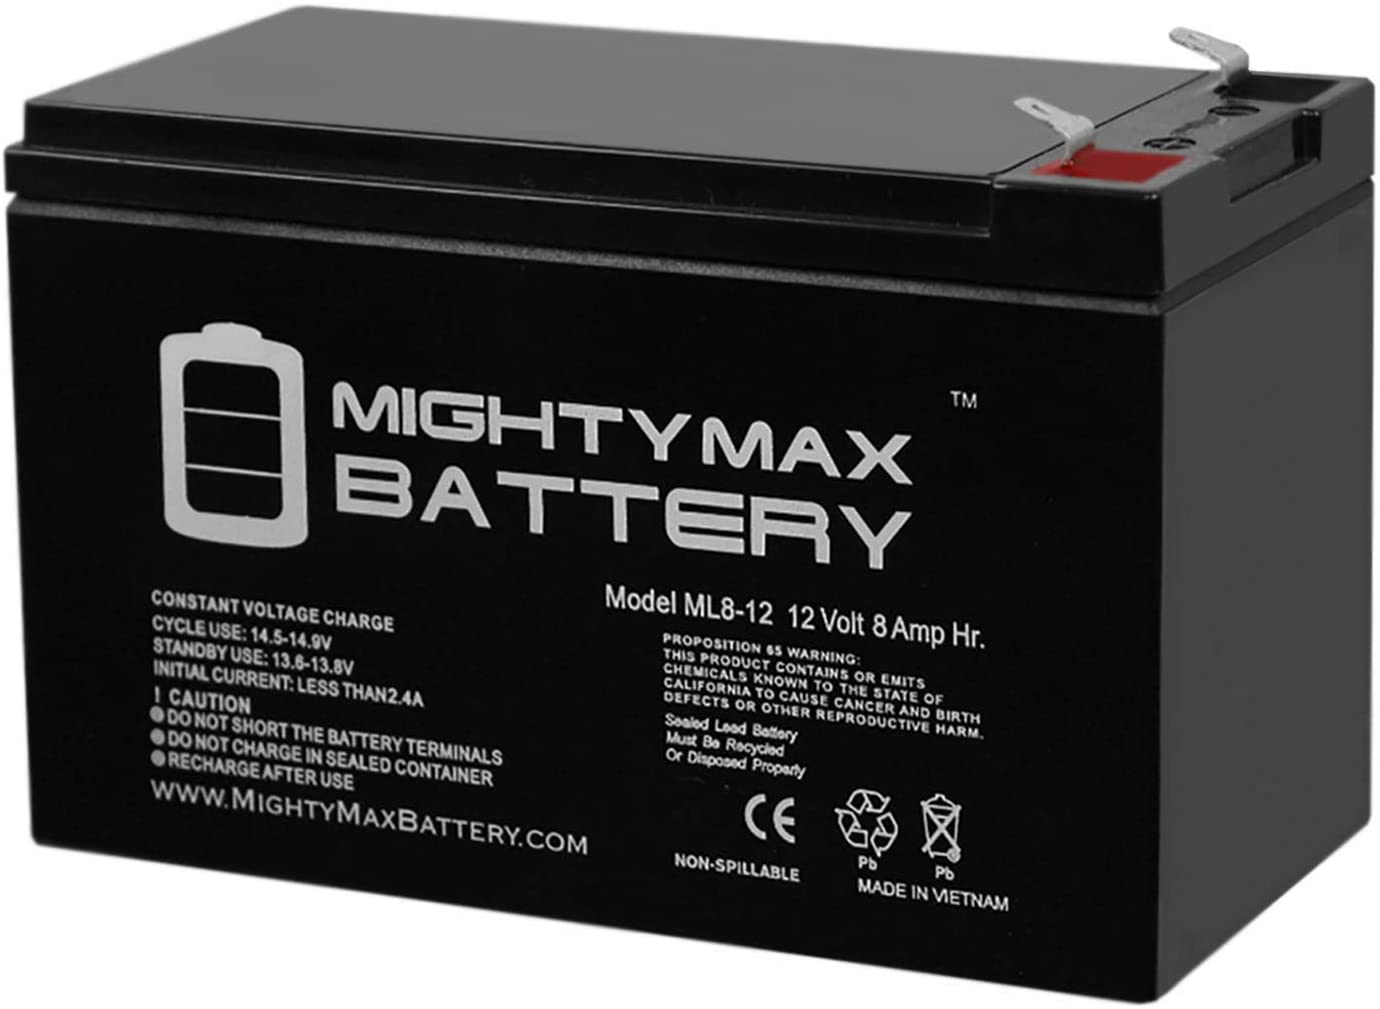 Mighty Max Battery 12V 8AH SLA Replaces Razor Dirt 25117460 + 12V 1Amp Charger Brand Product